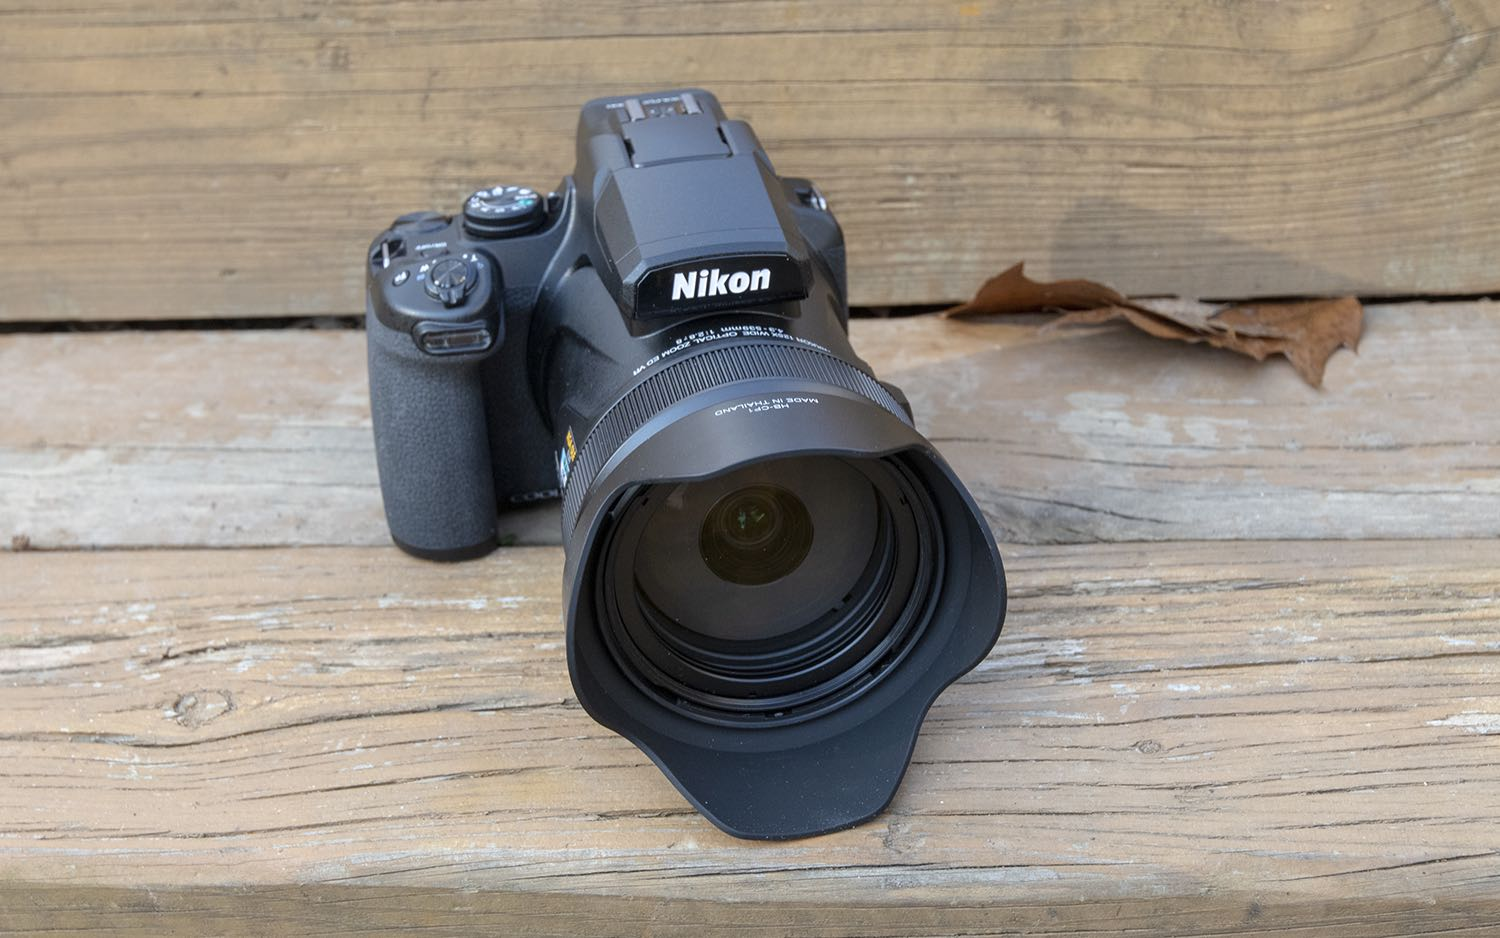 Nikon Coolpix P1000 Review: This 125x Superzoom Shoots the